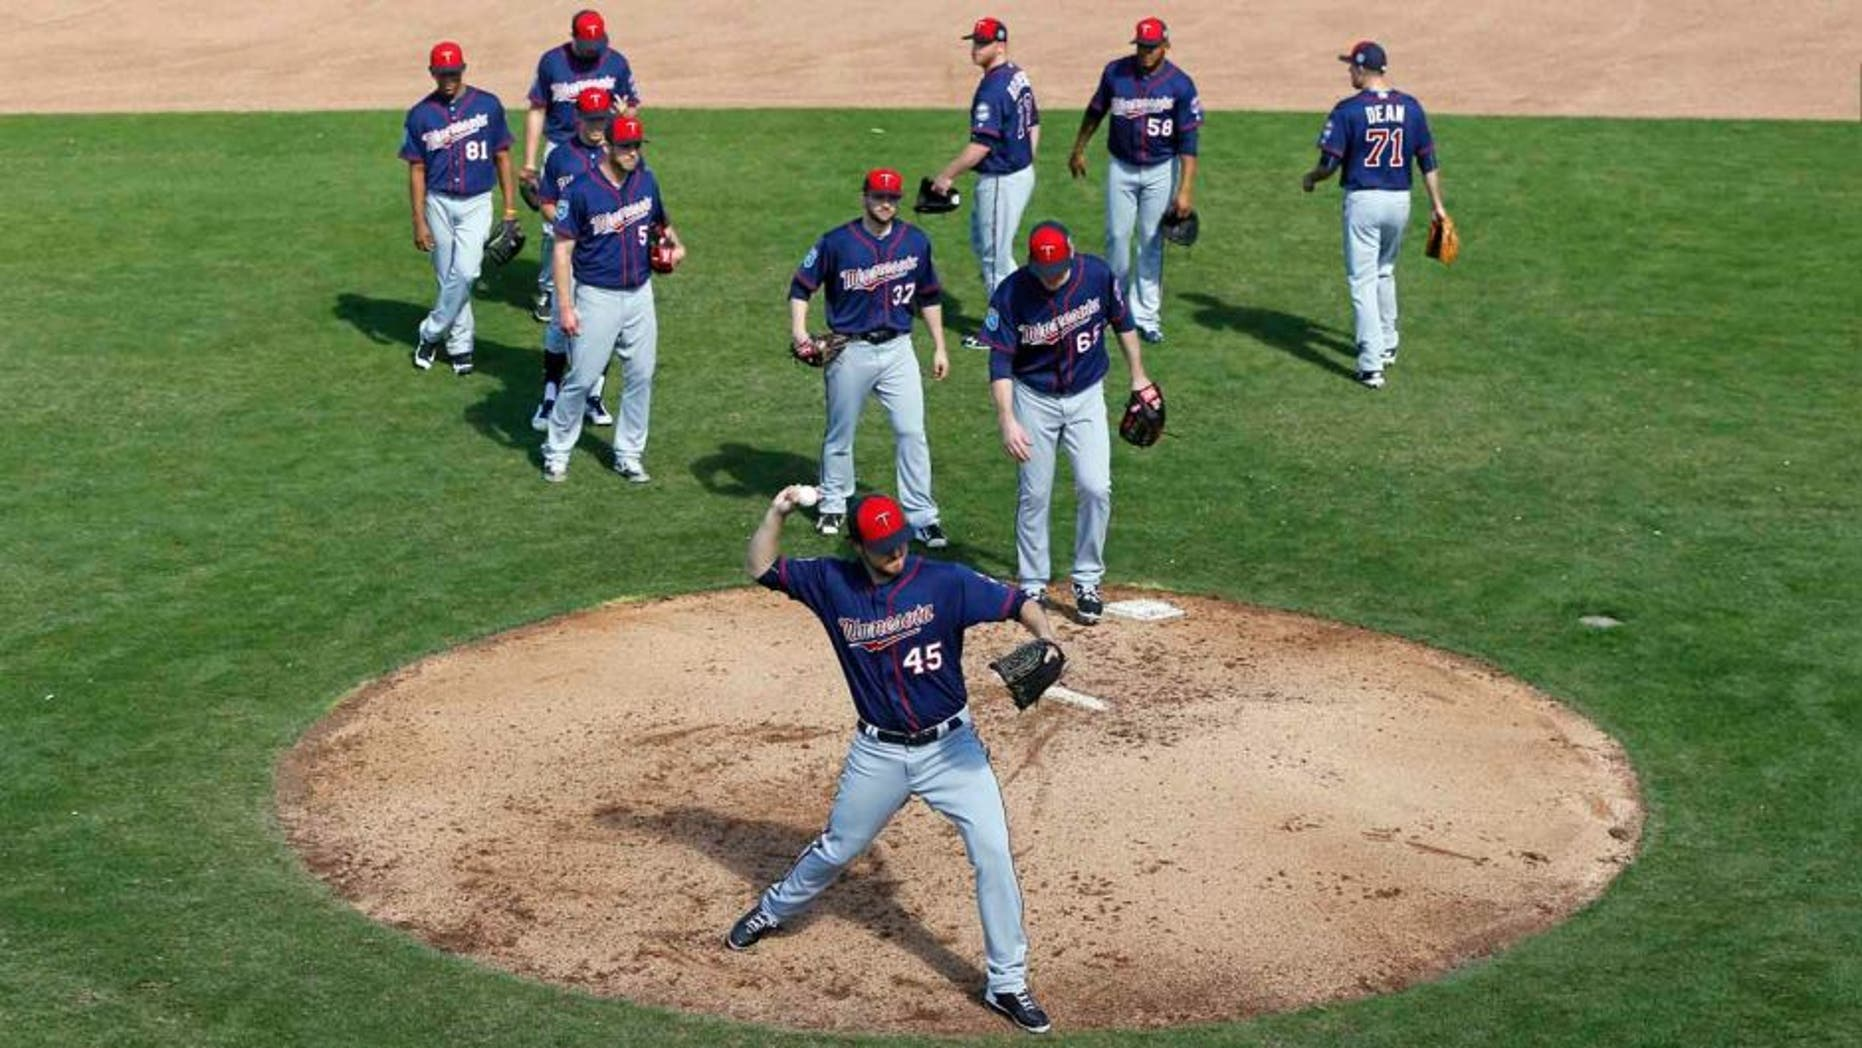 Minnesota Twins pitcher Phil Hughes runs a drill as teammates watch during a spring training baseball workout in Fort Myers, Fla., Monday, Feb. 22, 2016.